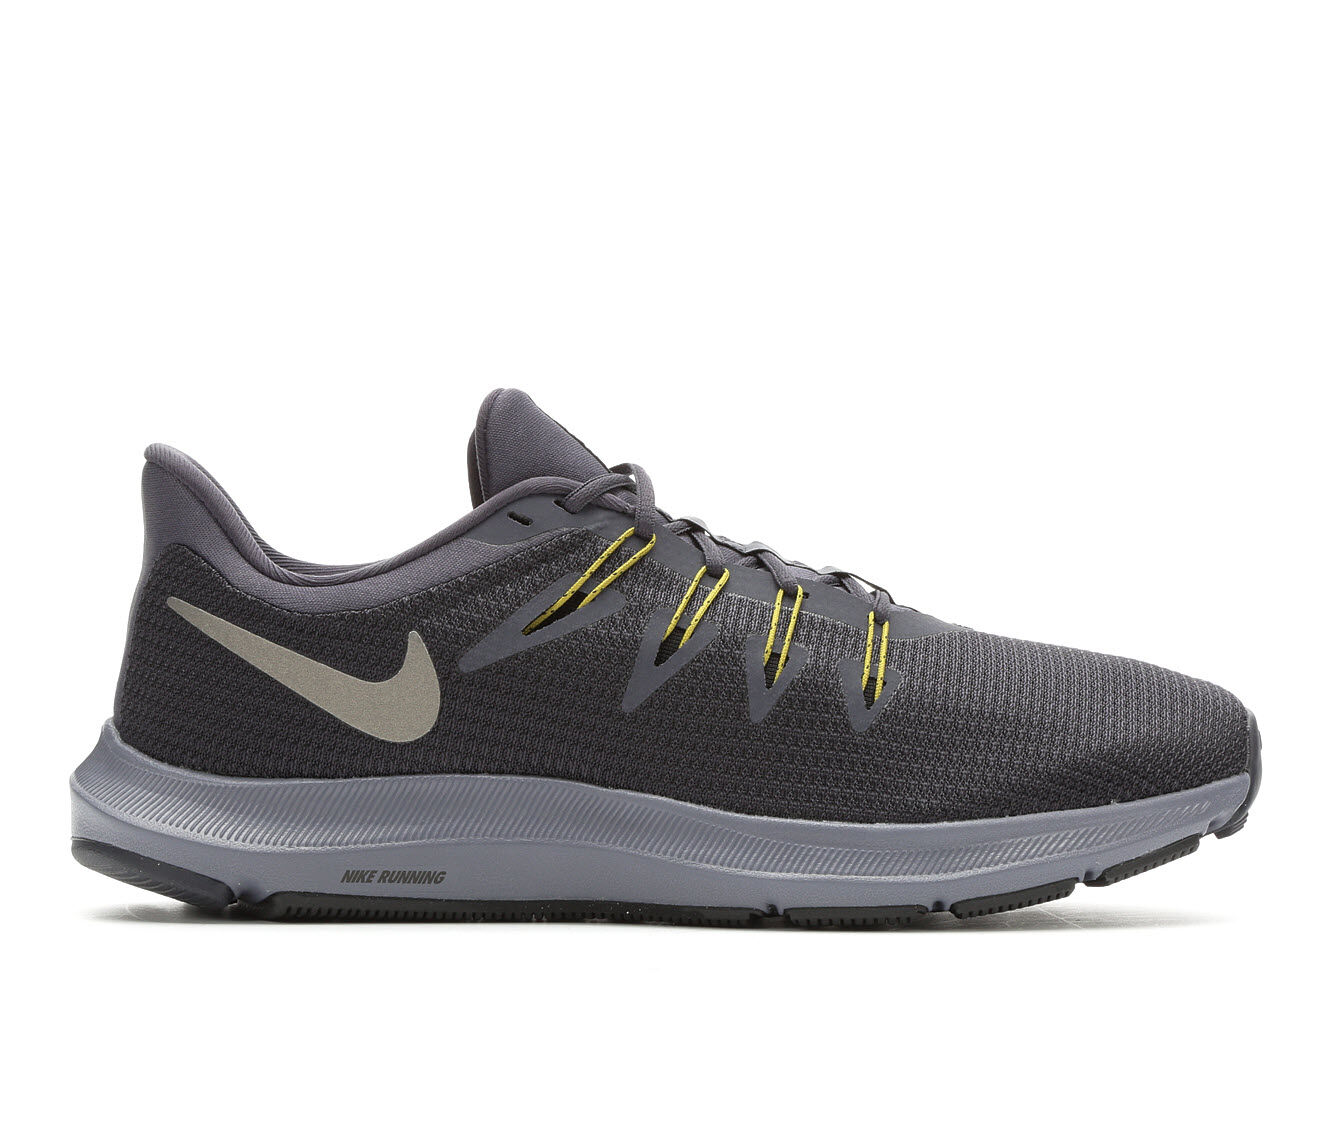 Men's Nike Quest Running Shoes Gry/Blu/Grn 006